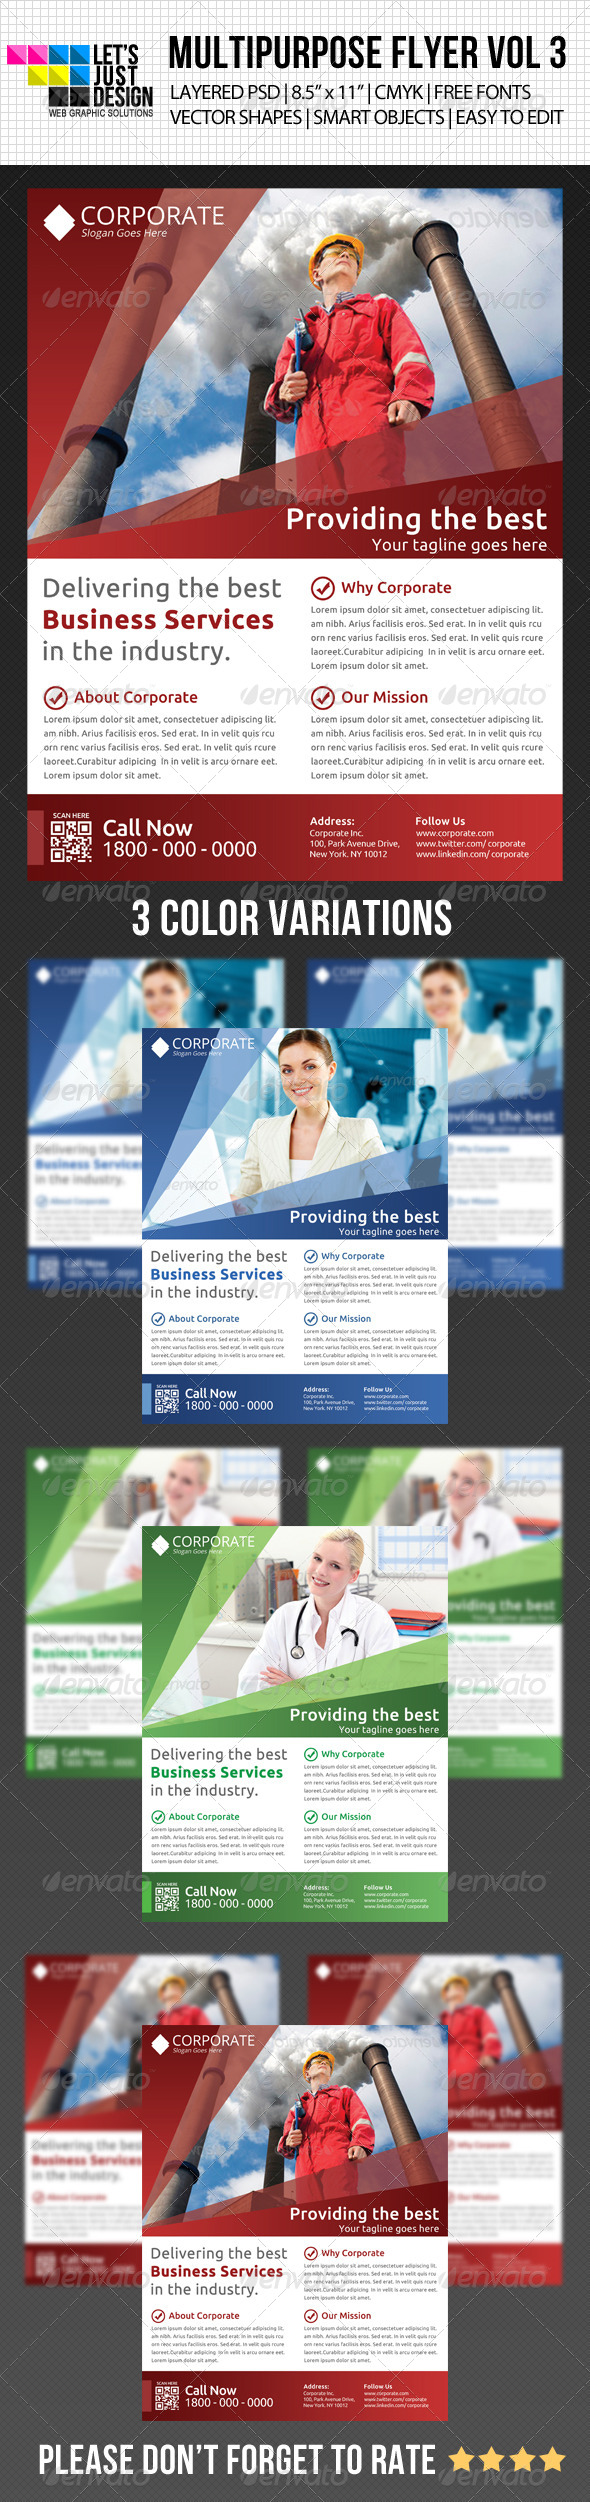 GraphicRiver Multipurpose Flyer Template Vol 3 5037816